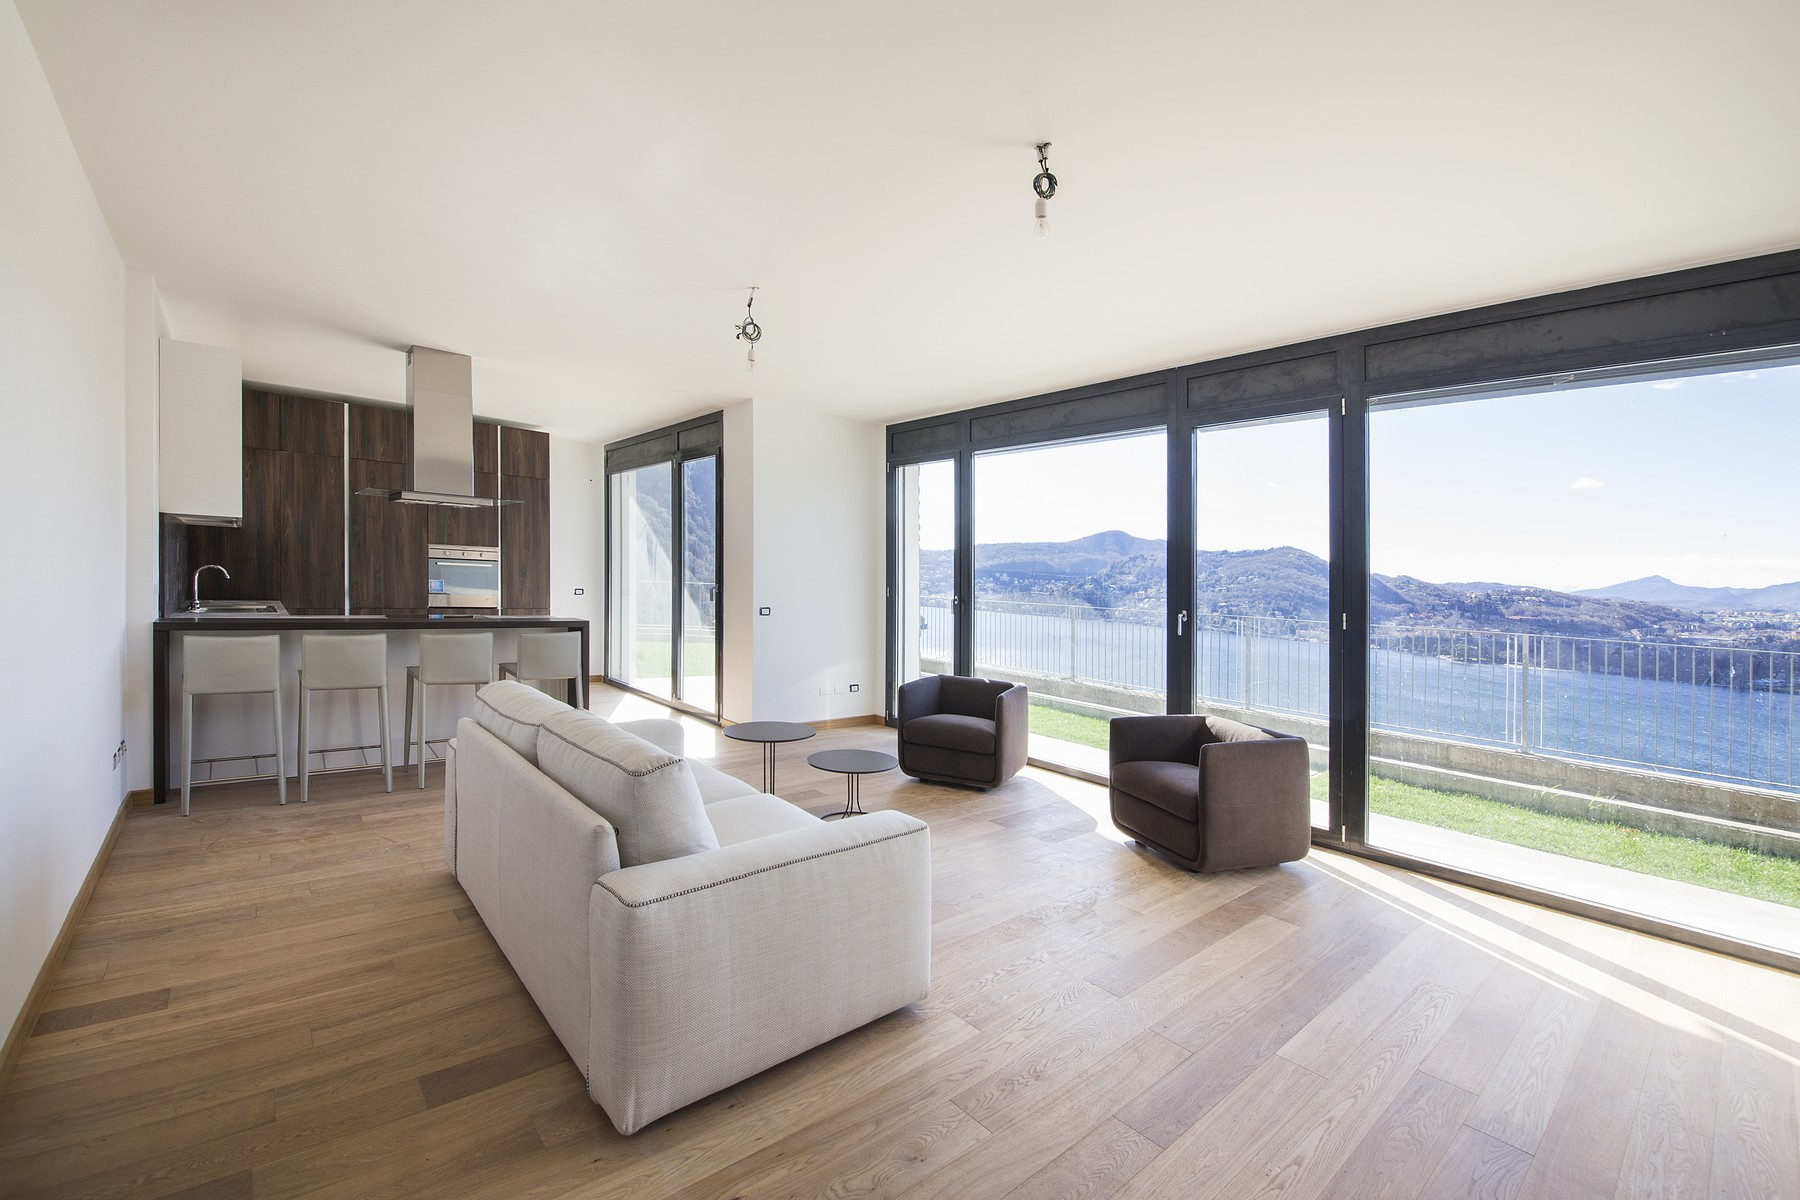 Apartamento por un Venta en Modern apartment with private garden and amazing lake views Via Caronti Blevio, Como 22020 Italia